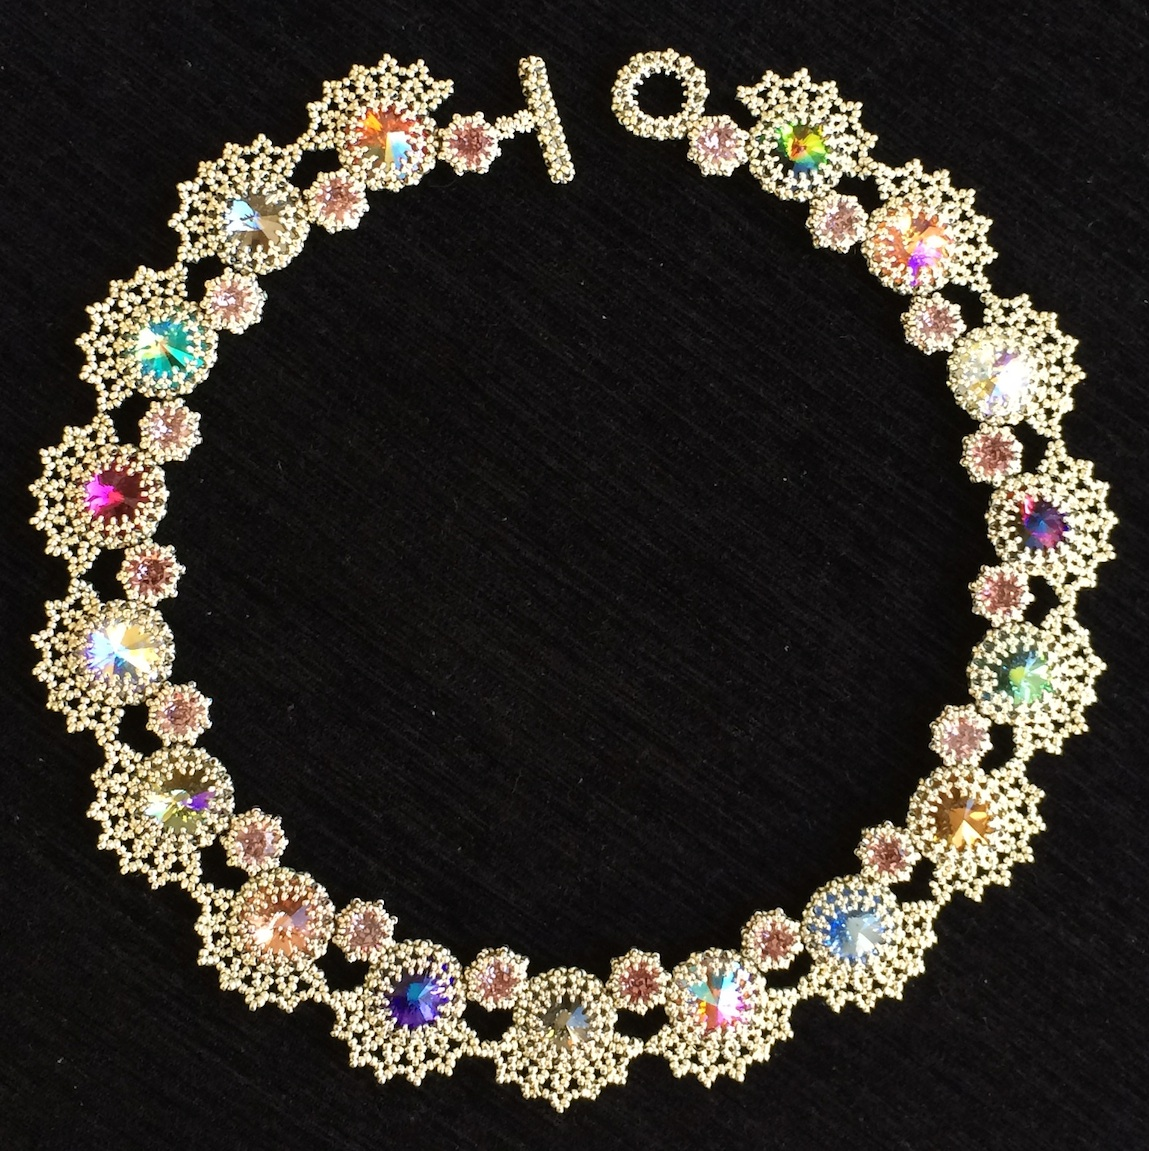 Lyra's Jewels - made entirely in Hubble Stitch